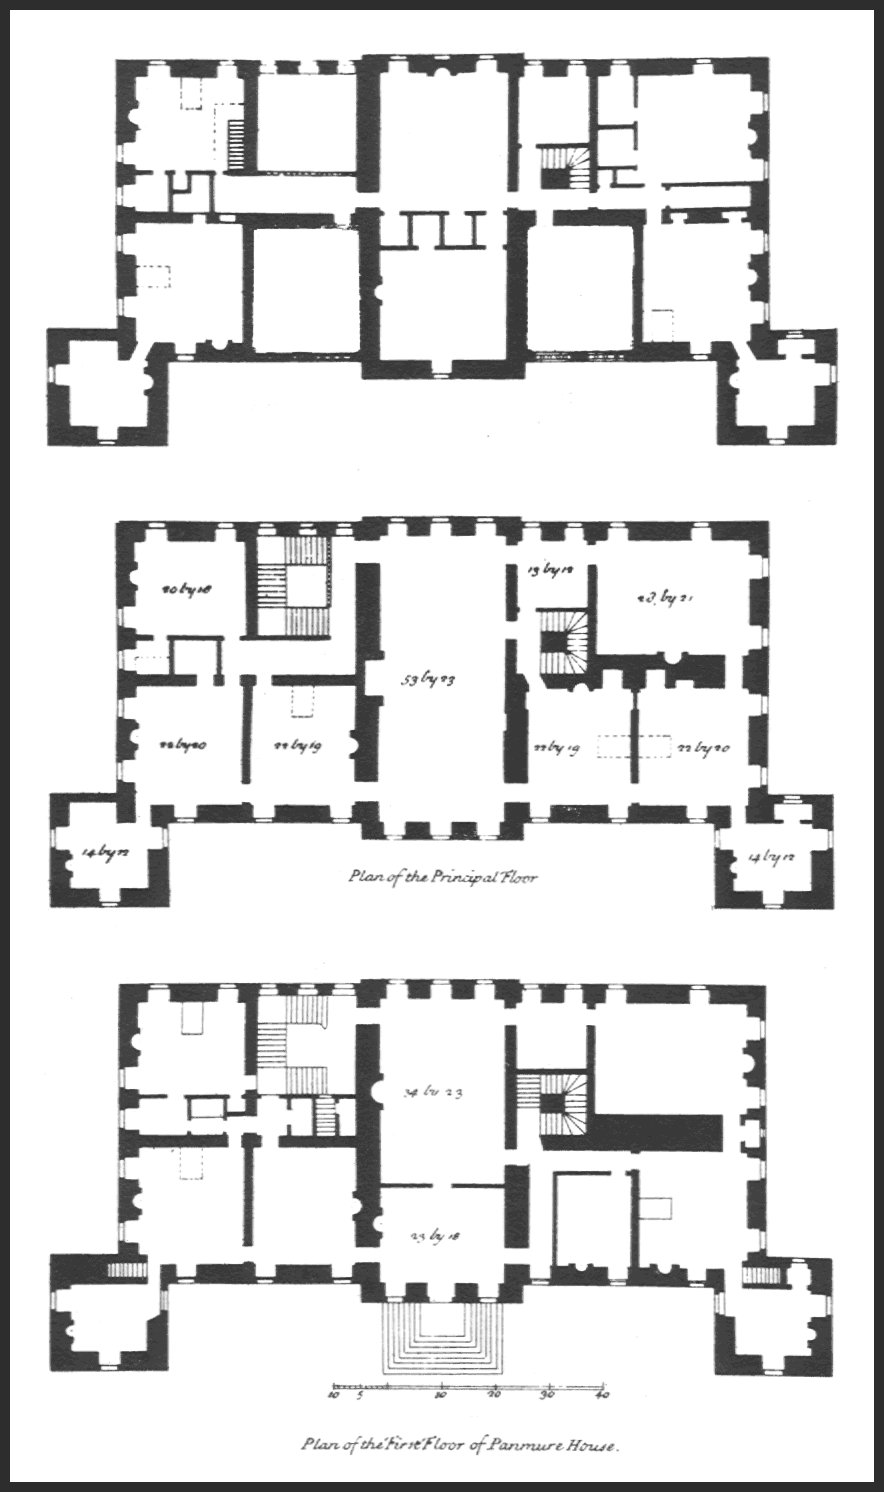 Panmure House Floor Plans (This graphic may be enlarged)